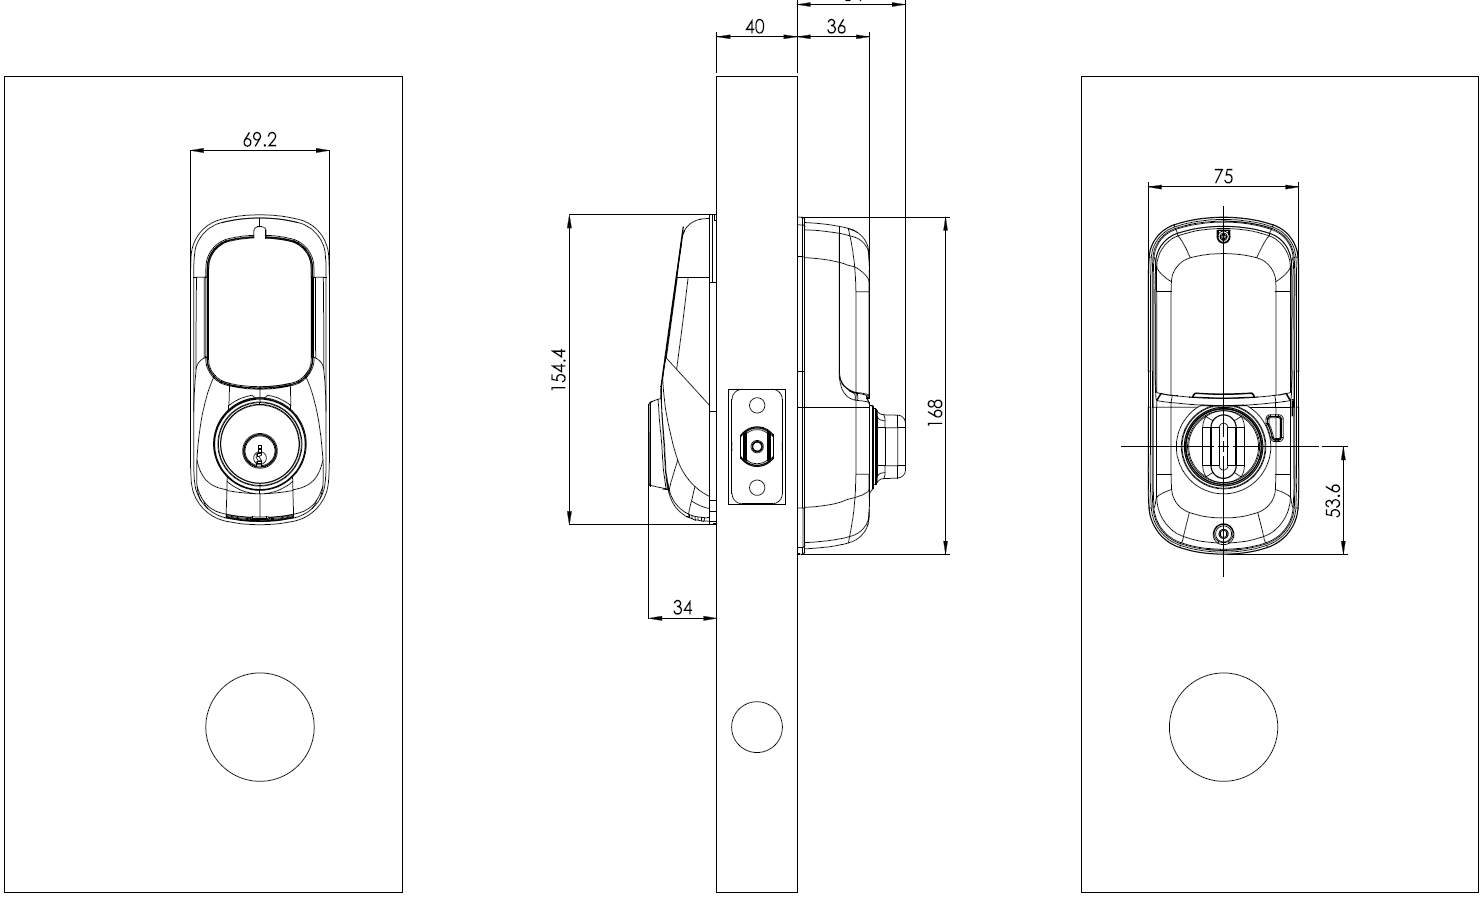 smart lock schematic drawing